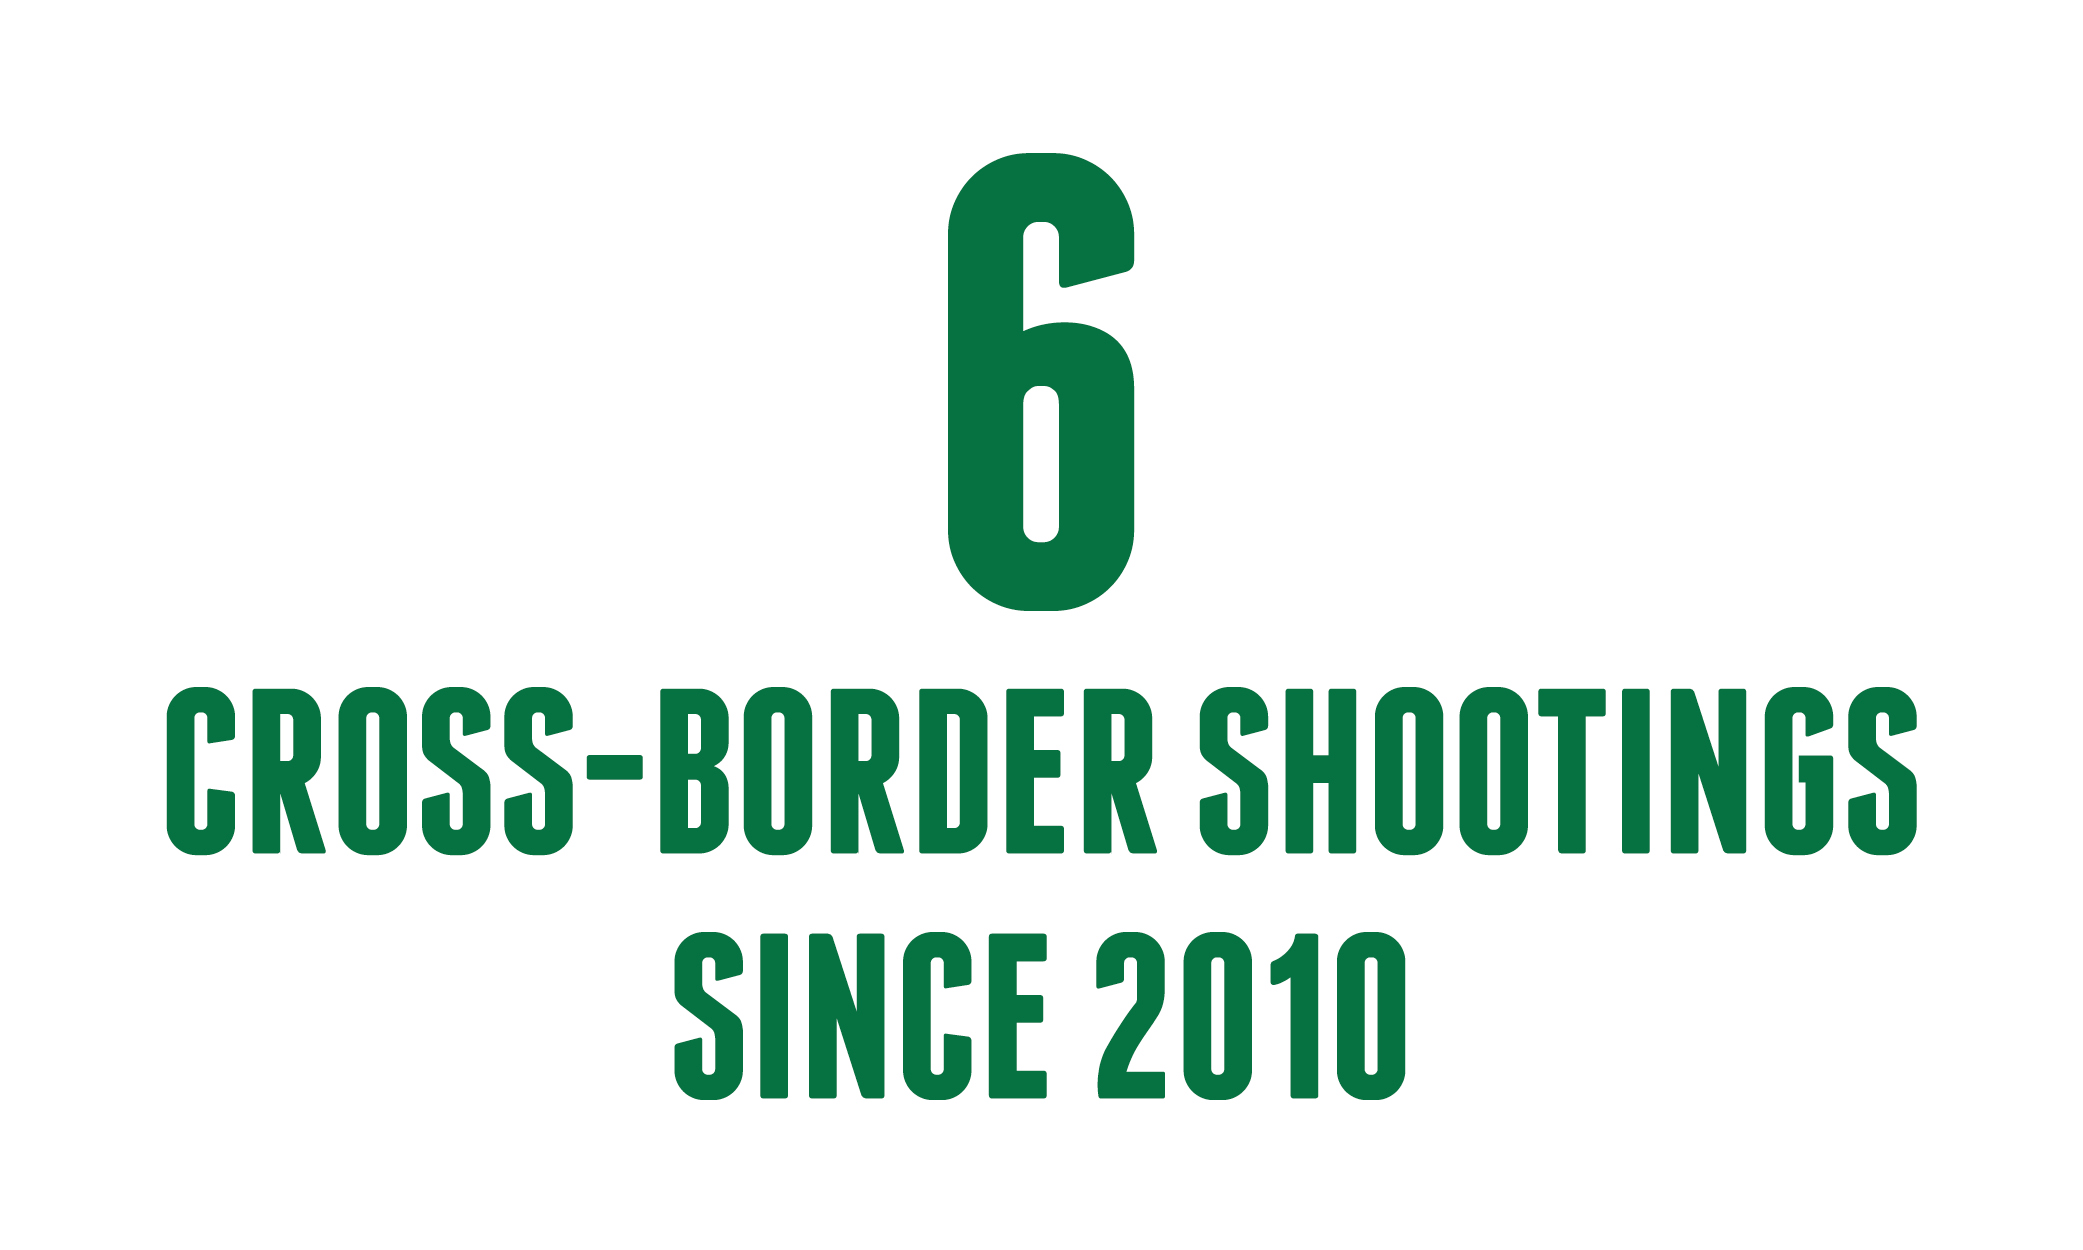 Cross-Border Shootings